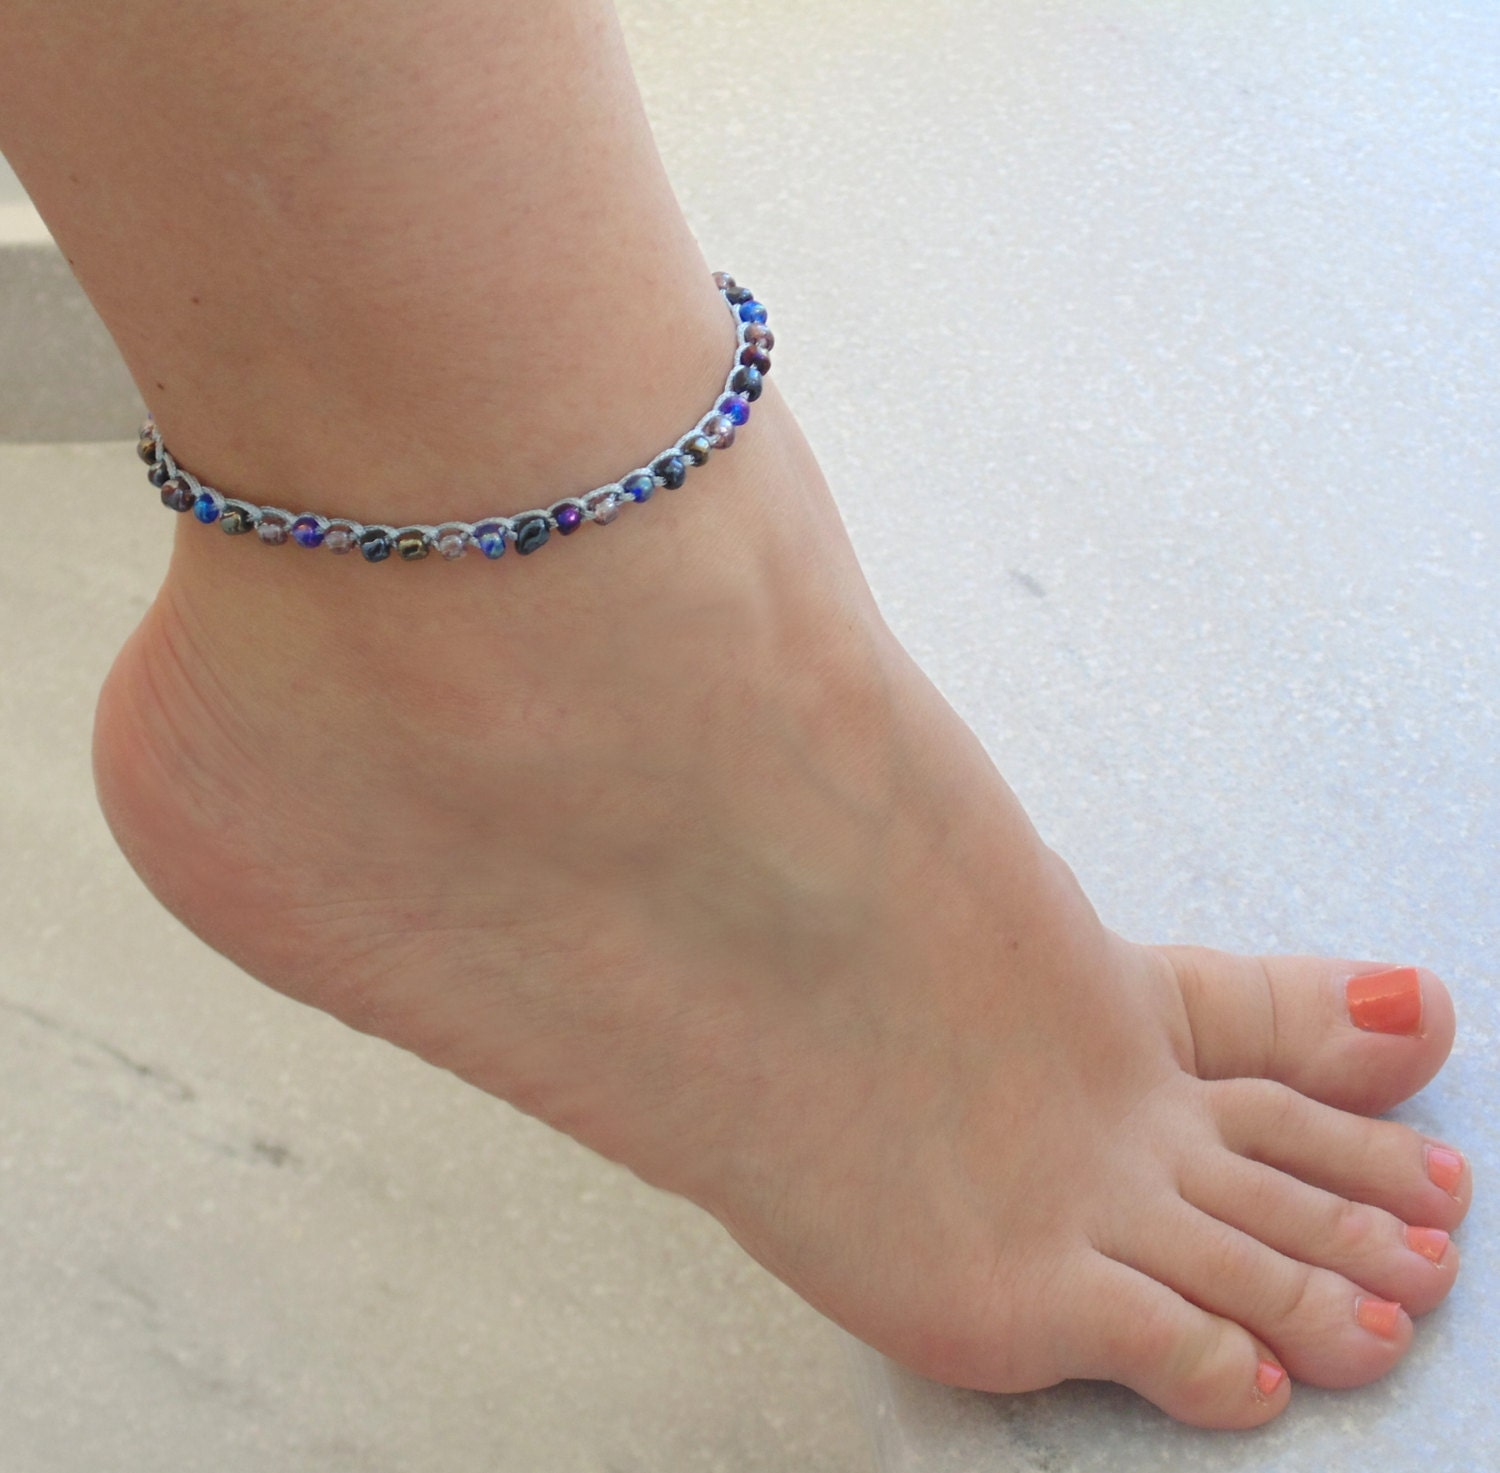 chain foot silver from ankle beach girls jewelry bracelets fashion sexy alloy anklets product summer women anklet styles leg bracelet for retro